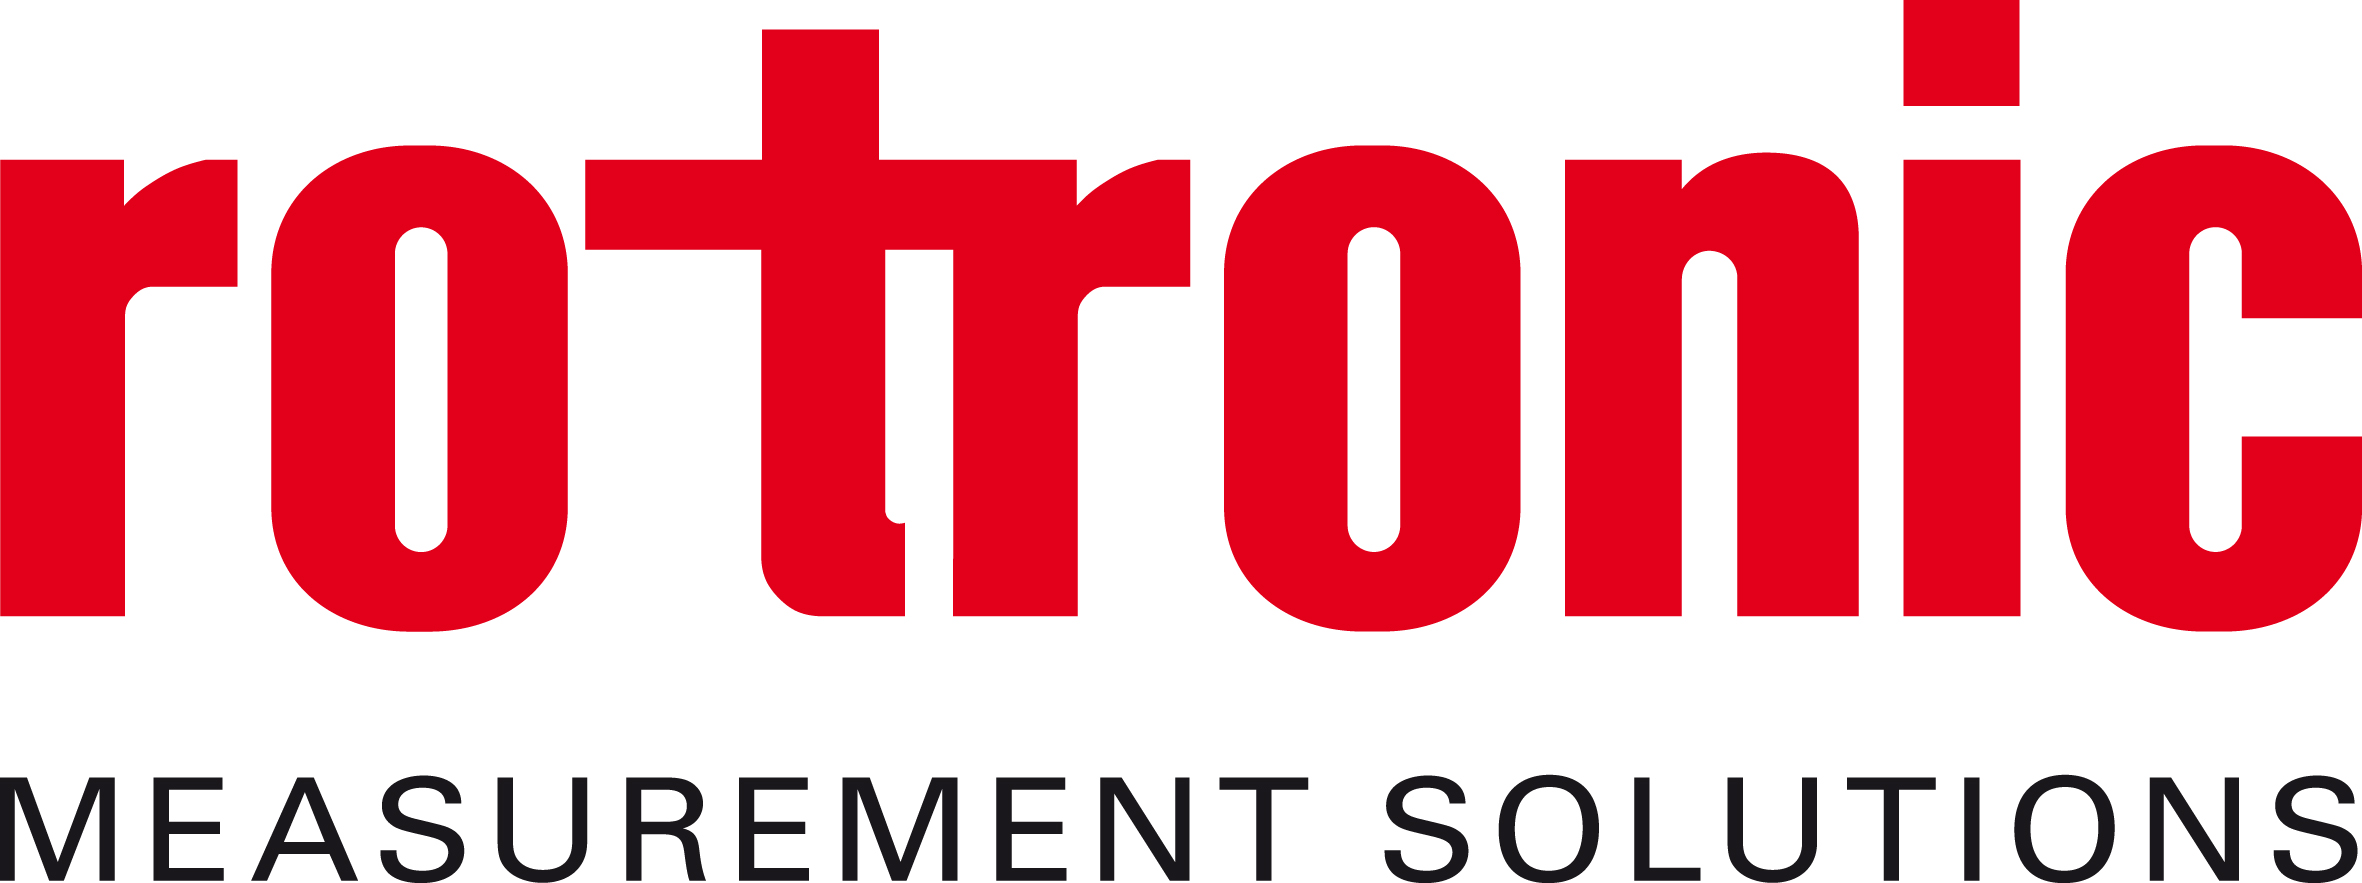 Logo rotronic -  measurement solutions.jpg